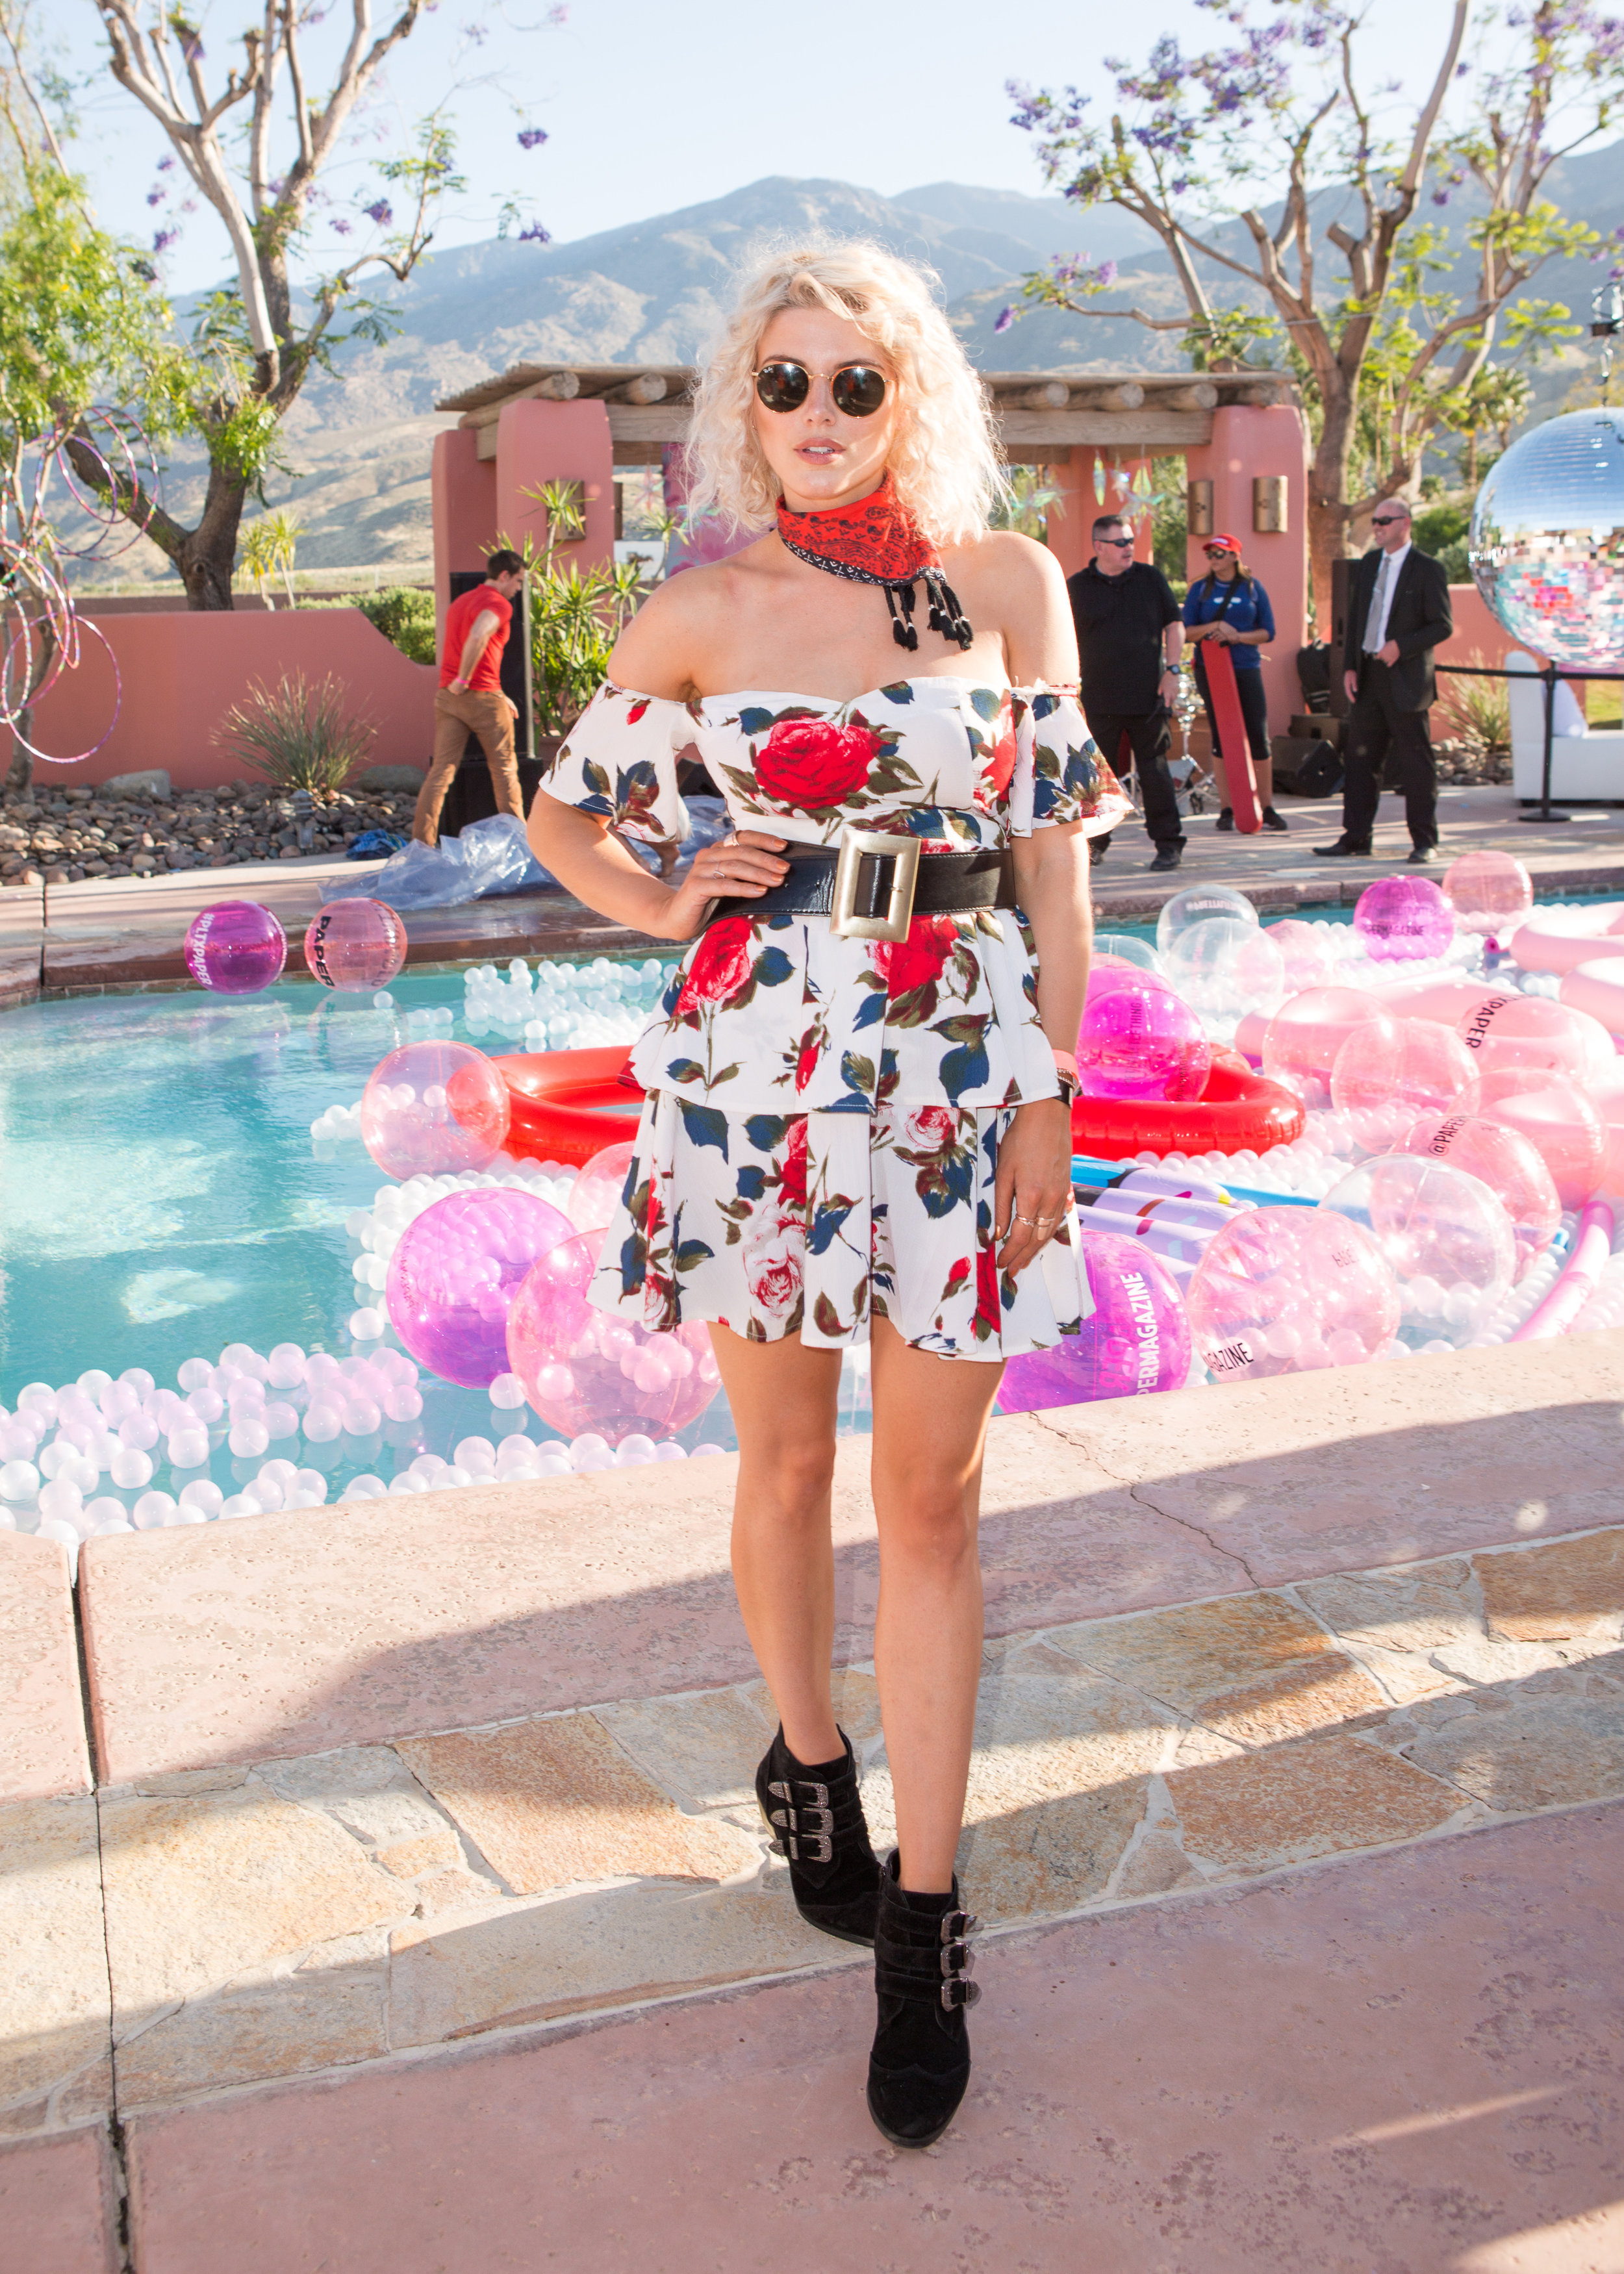 Ultimate Hollywood Coachella Poolside Party ashley james.jpg